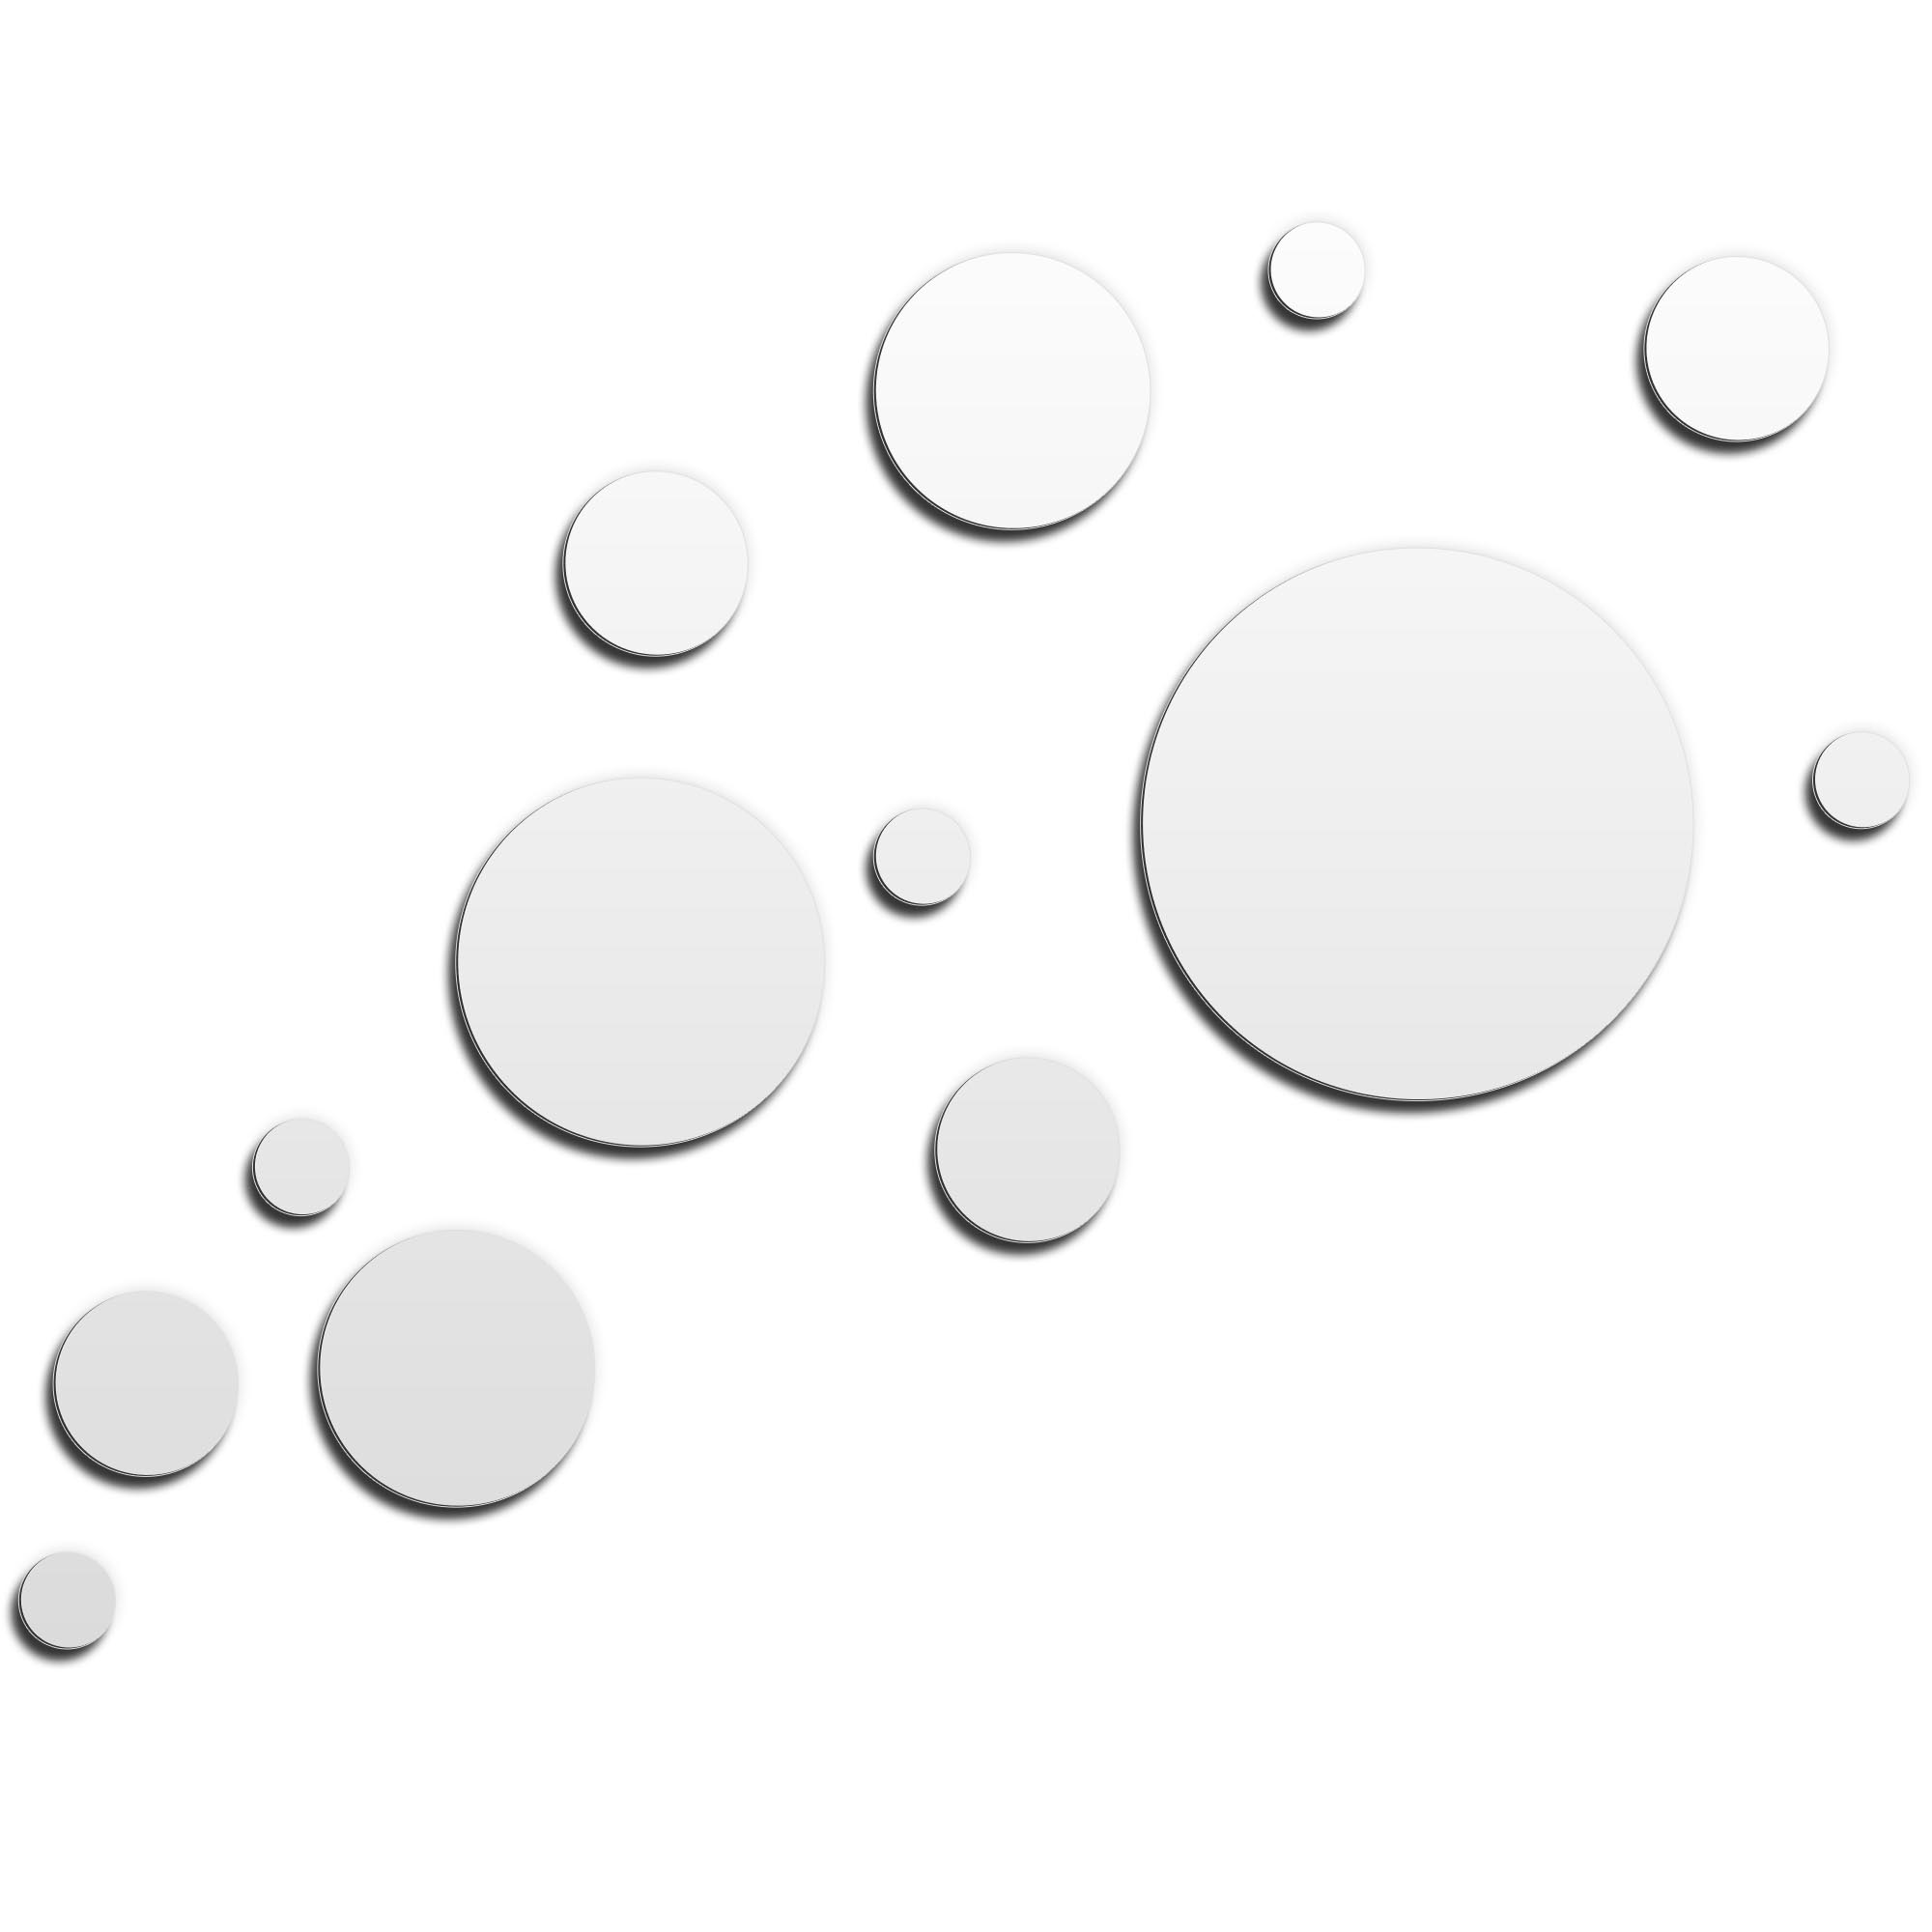 NAY 'Floating White' 66in x 50in Circles Abstract Art on Aluminum Composite